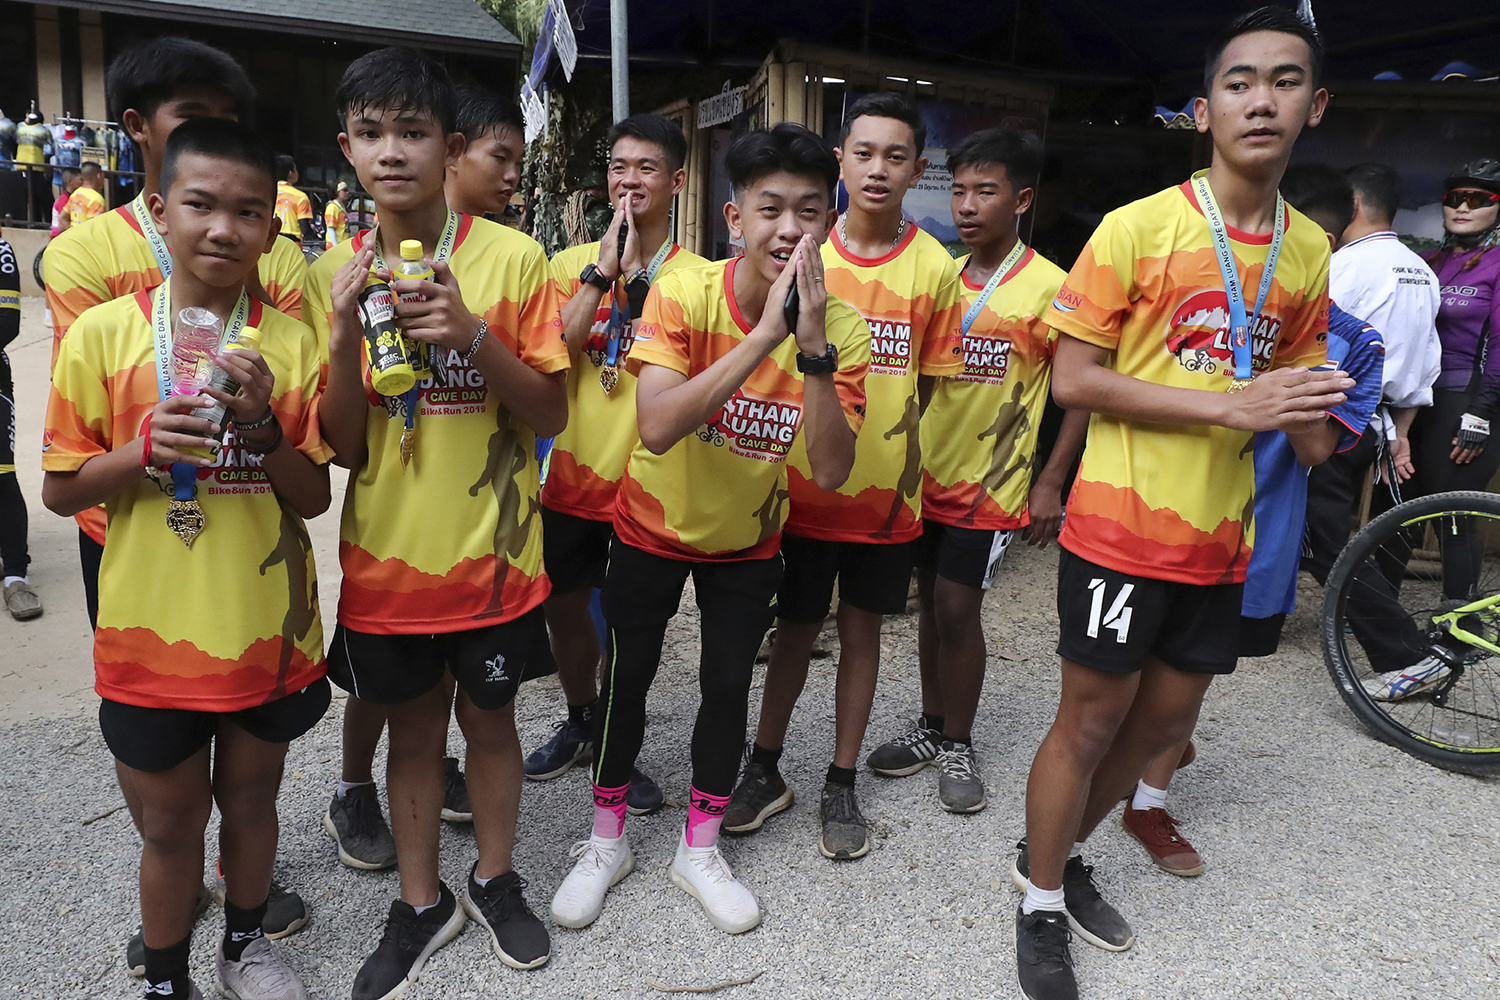 Members of the Wild Boars football team rescued from the Tham Luang flooded cave in Mae Sai district of Chiang Rai last year pose for the media after a marathon and biking event on Sunday. (AP photo)